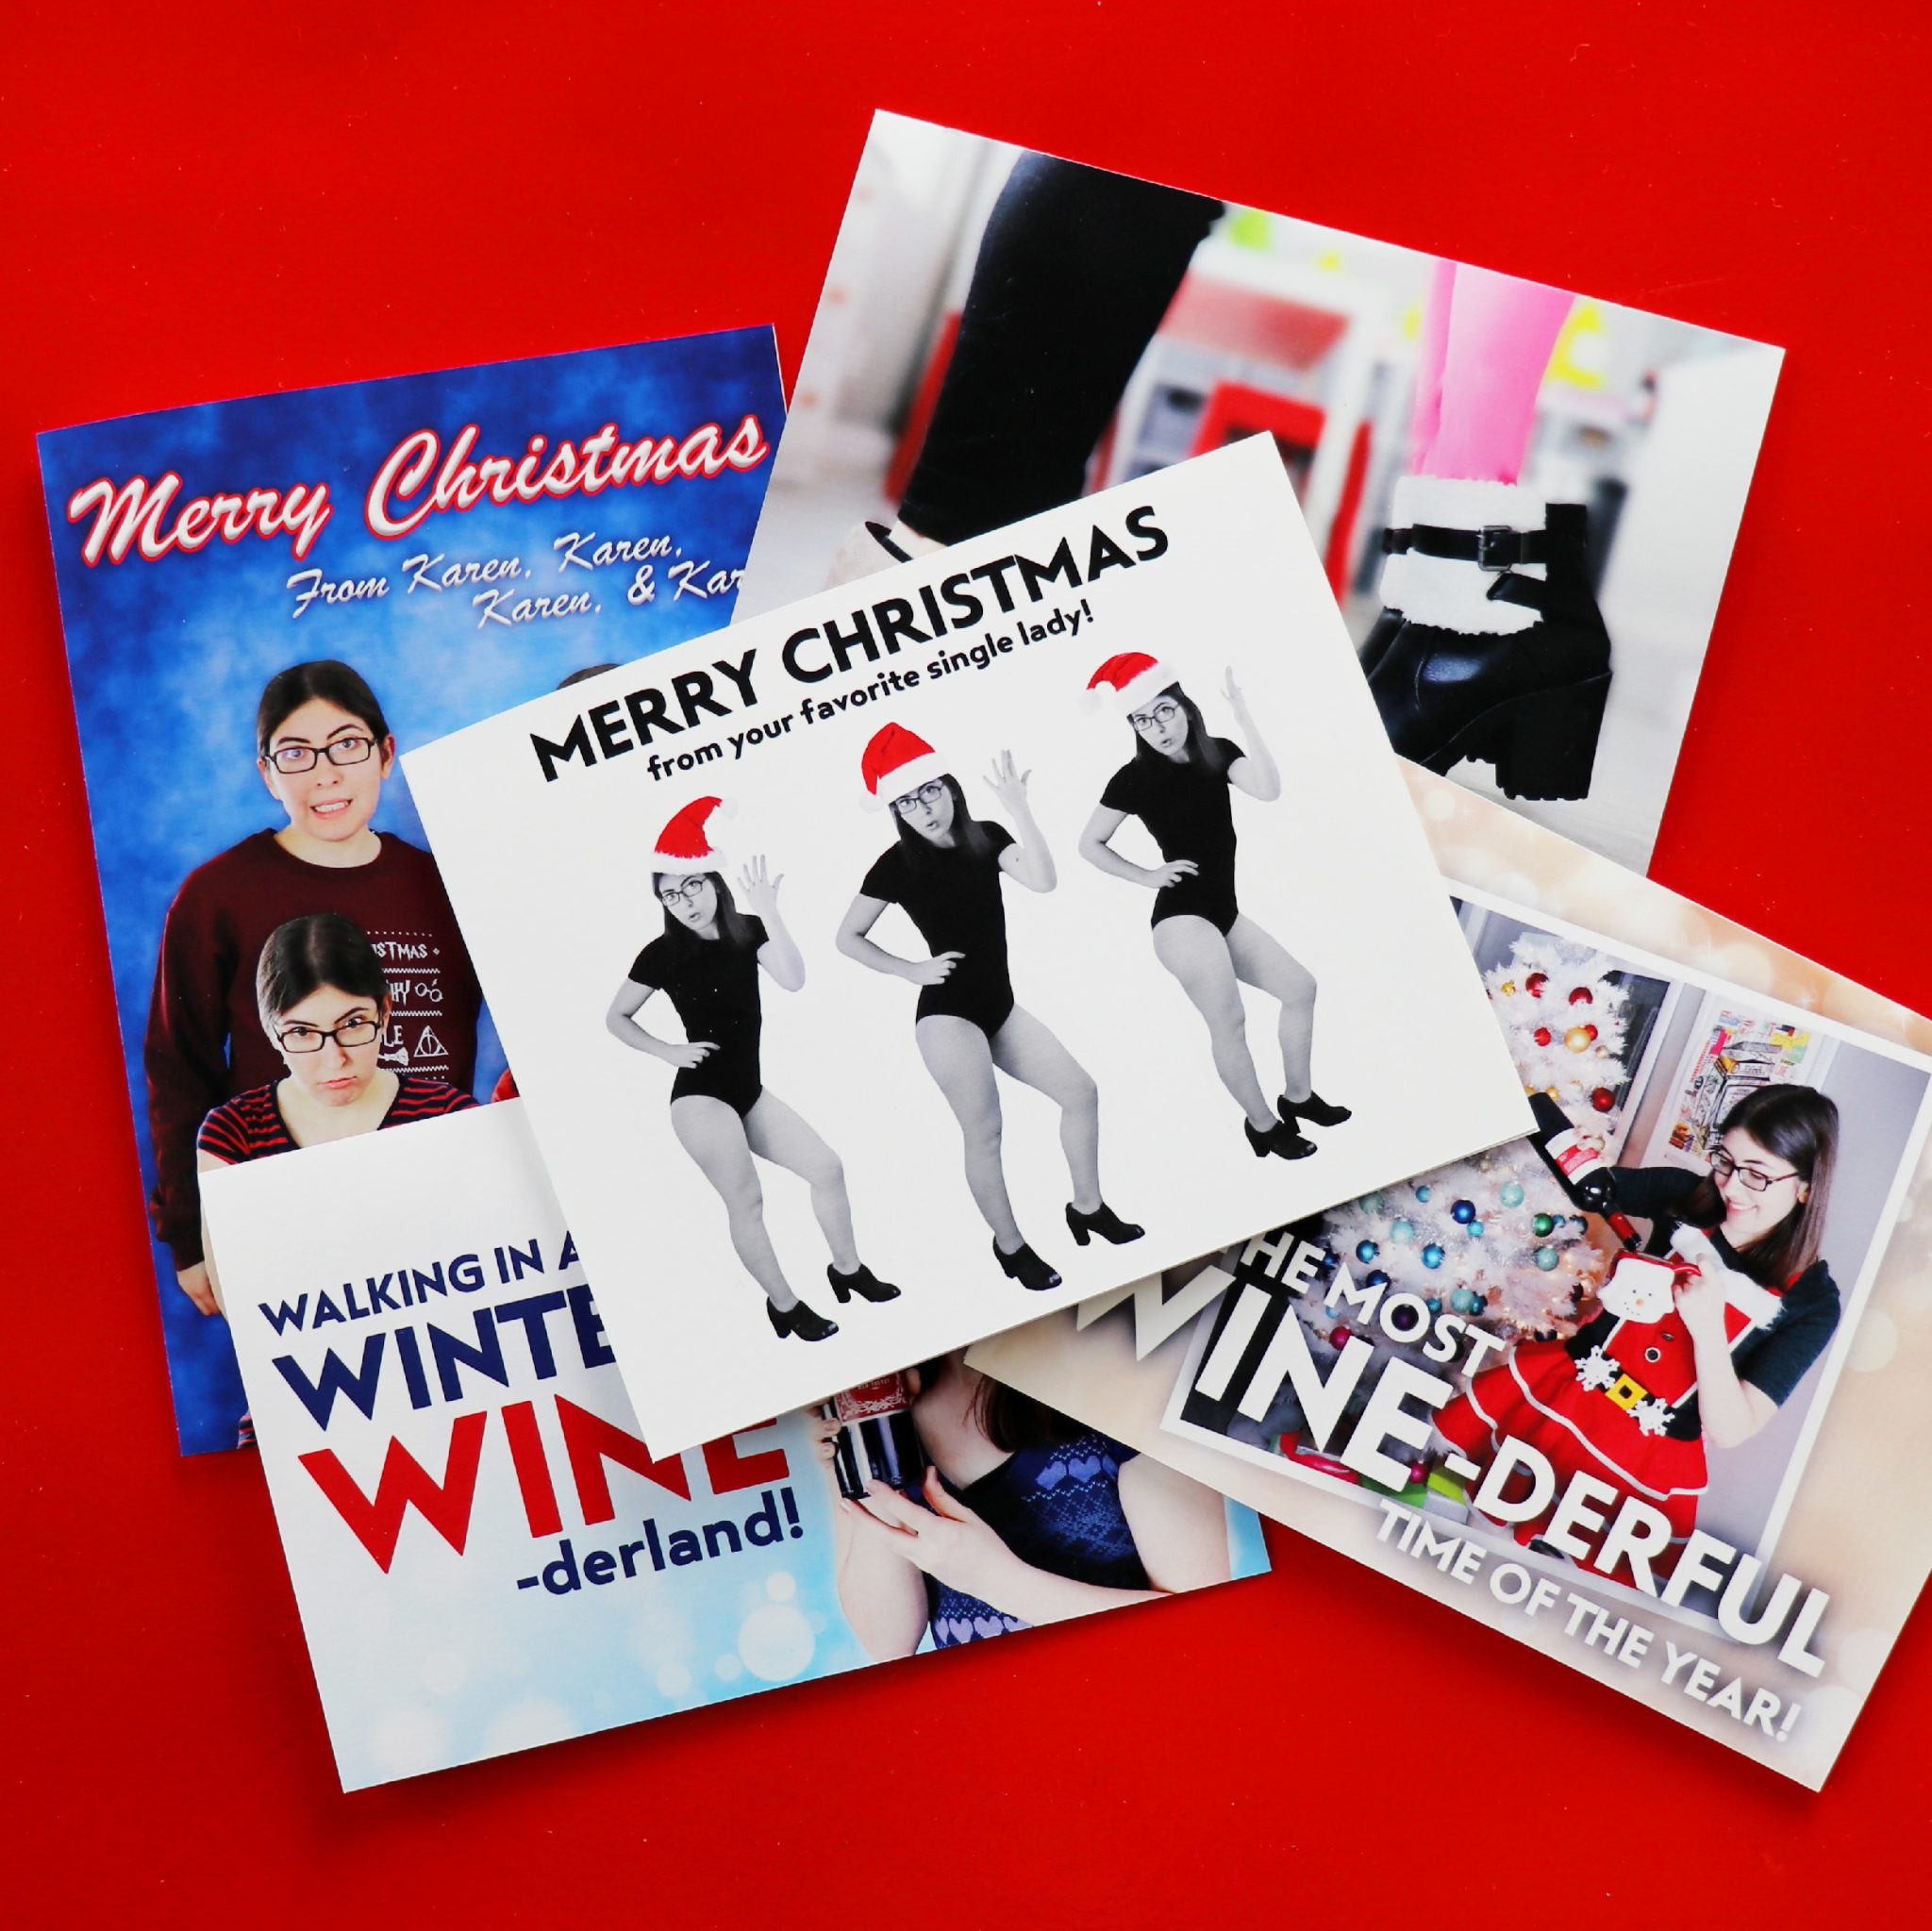 Christmas Card Ideas For Single People